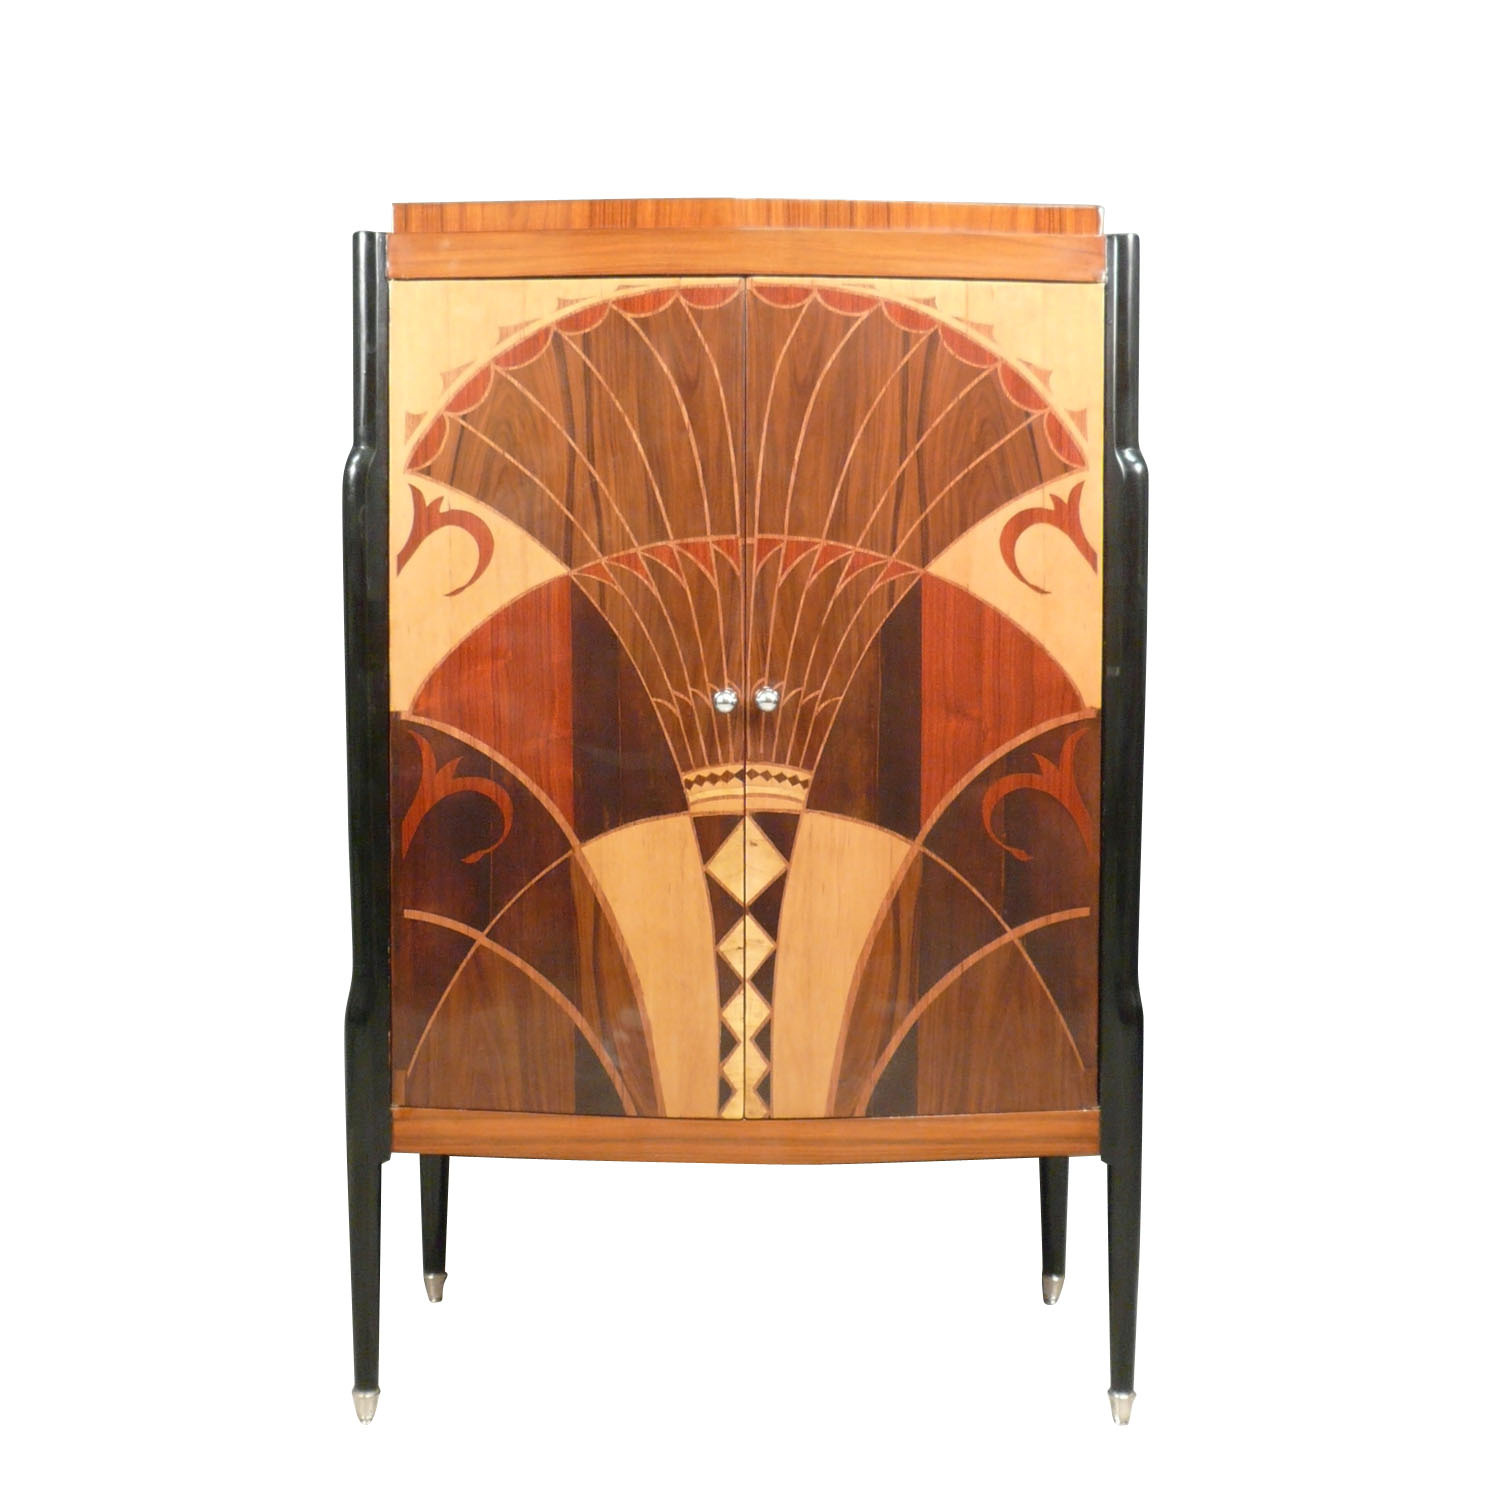 Art deco furniture photo gallery console desk for Meuble art deco belgique